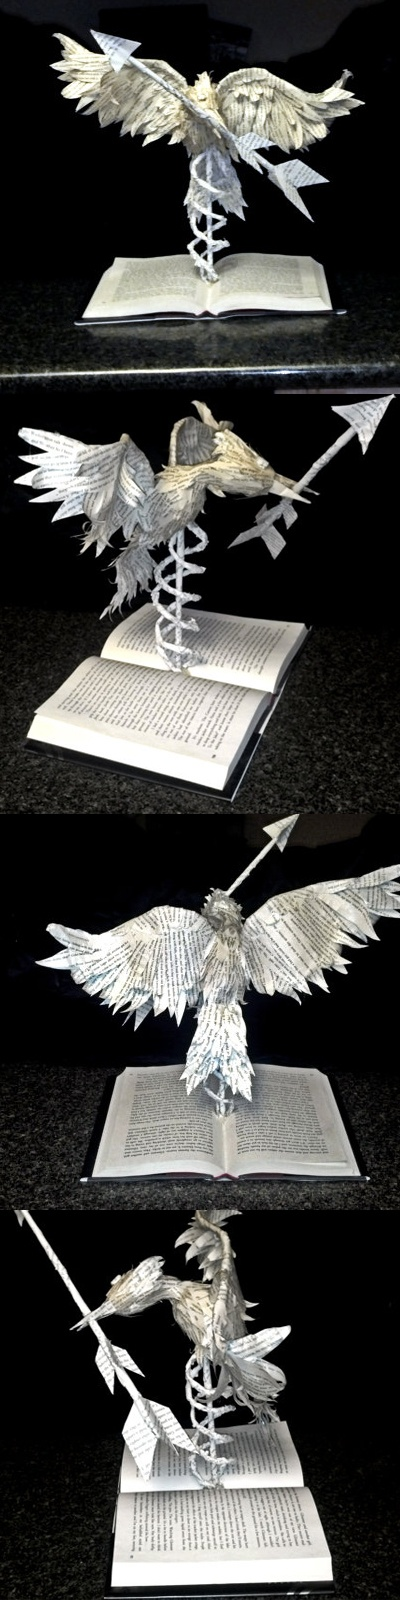 20 Unique 'The Hunger Games' Items on Etsy